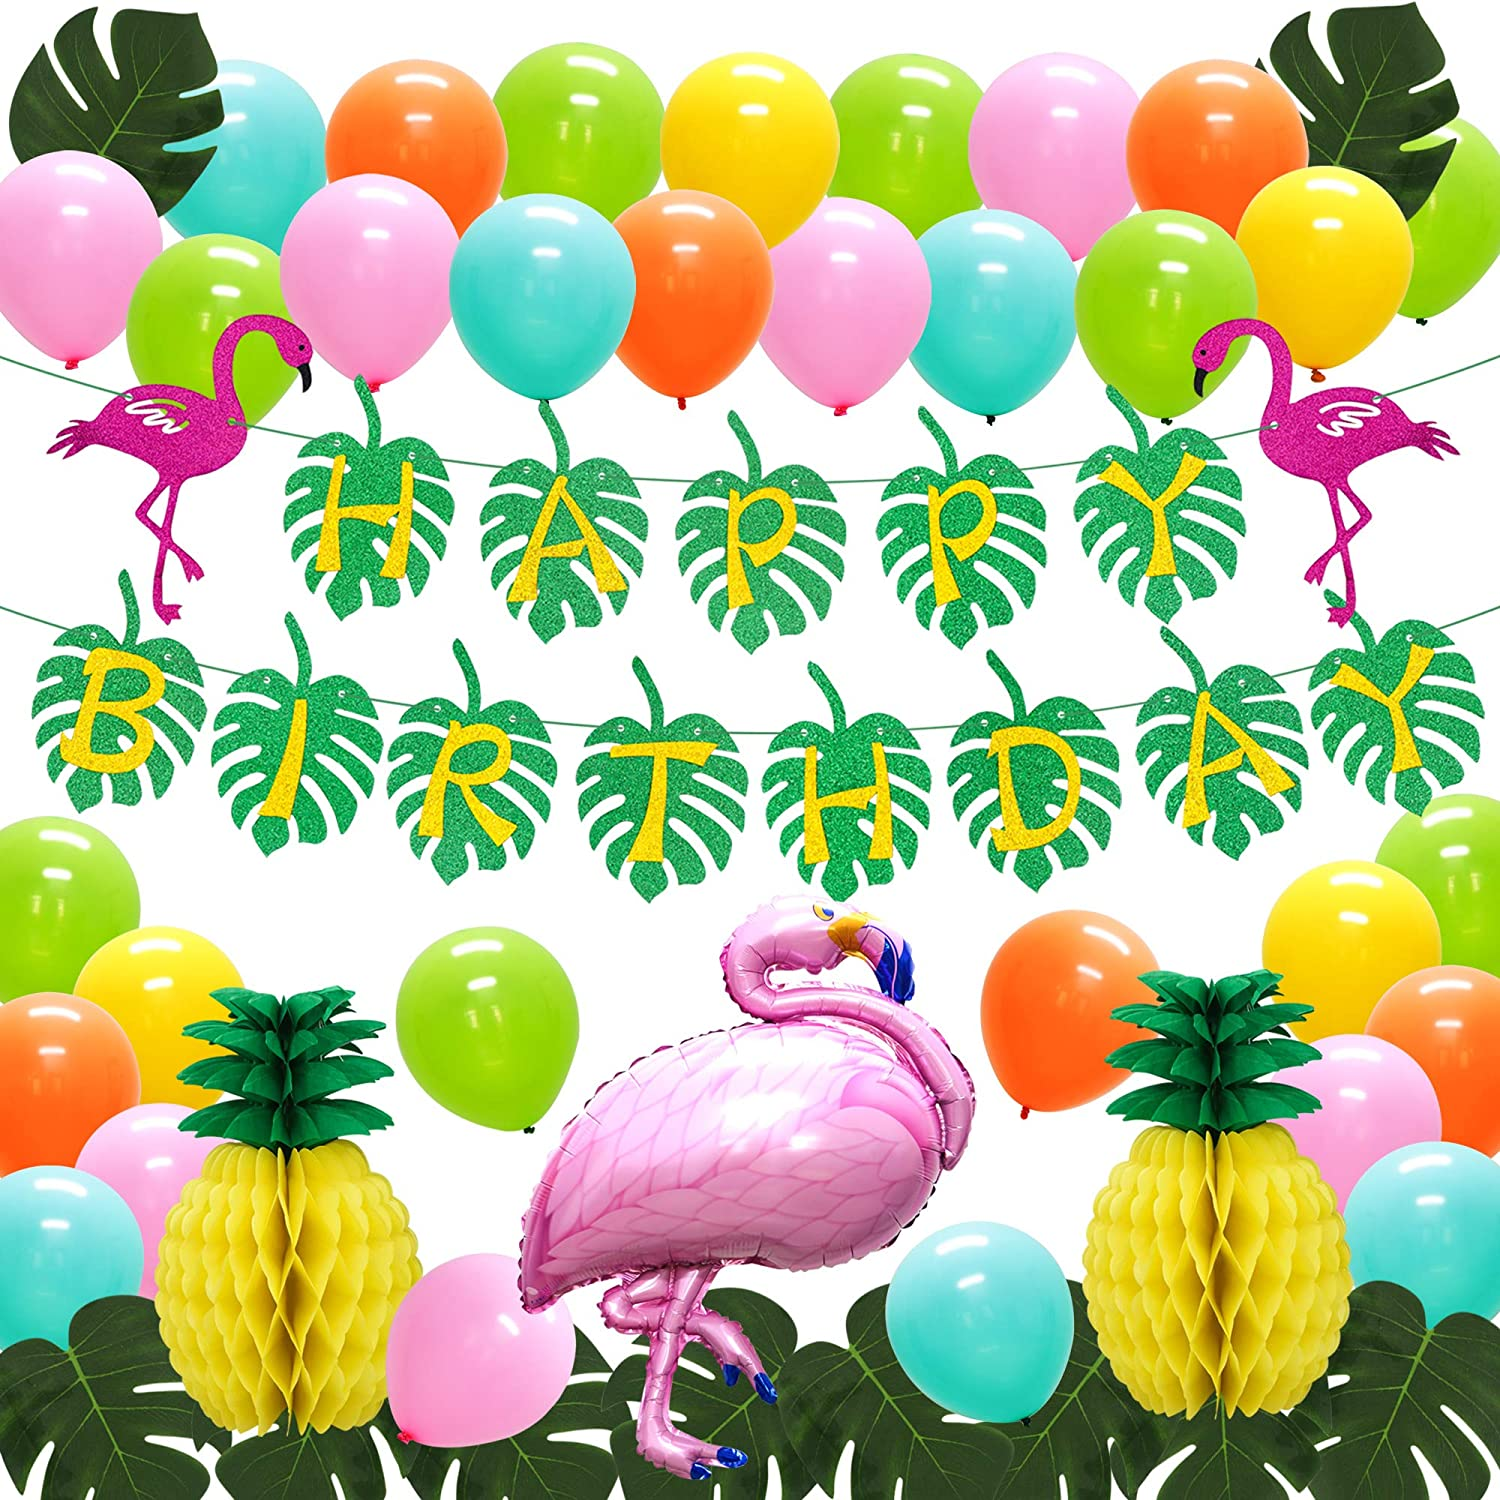 ADLKGG Hawaiian Themed Birthday Party Decorations, Flamingo and Pineapple Party Supplies - Happy Birthday Banner Tropical Palm Leaves, Flamingo Balloons Pineapple Honeycomb Balls for Bachelorette